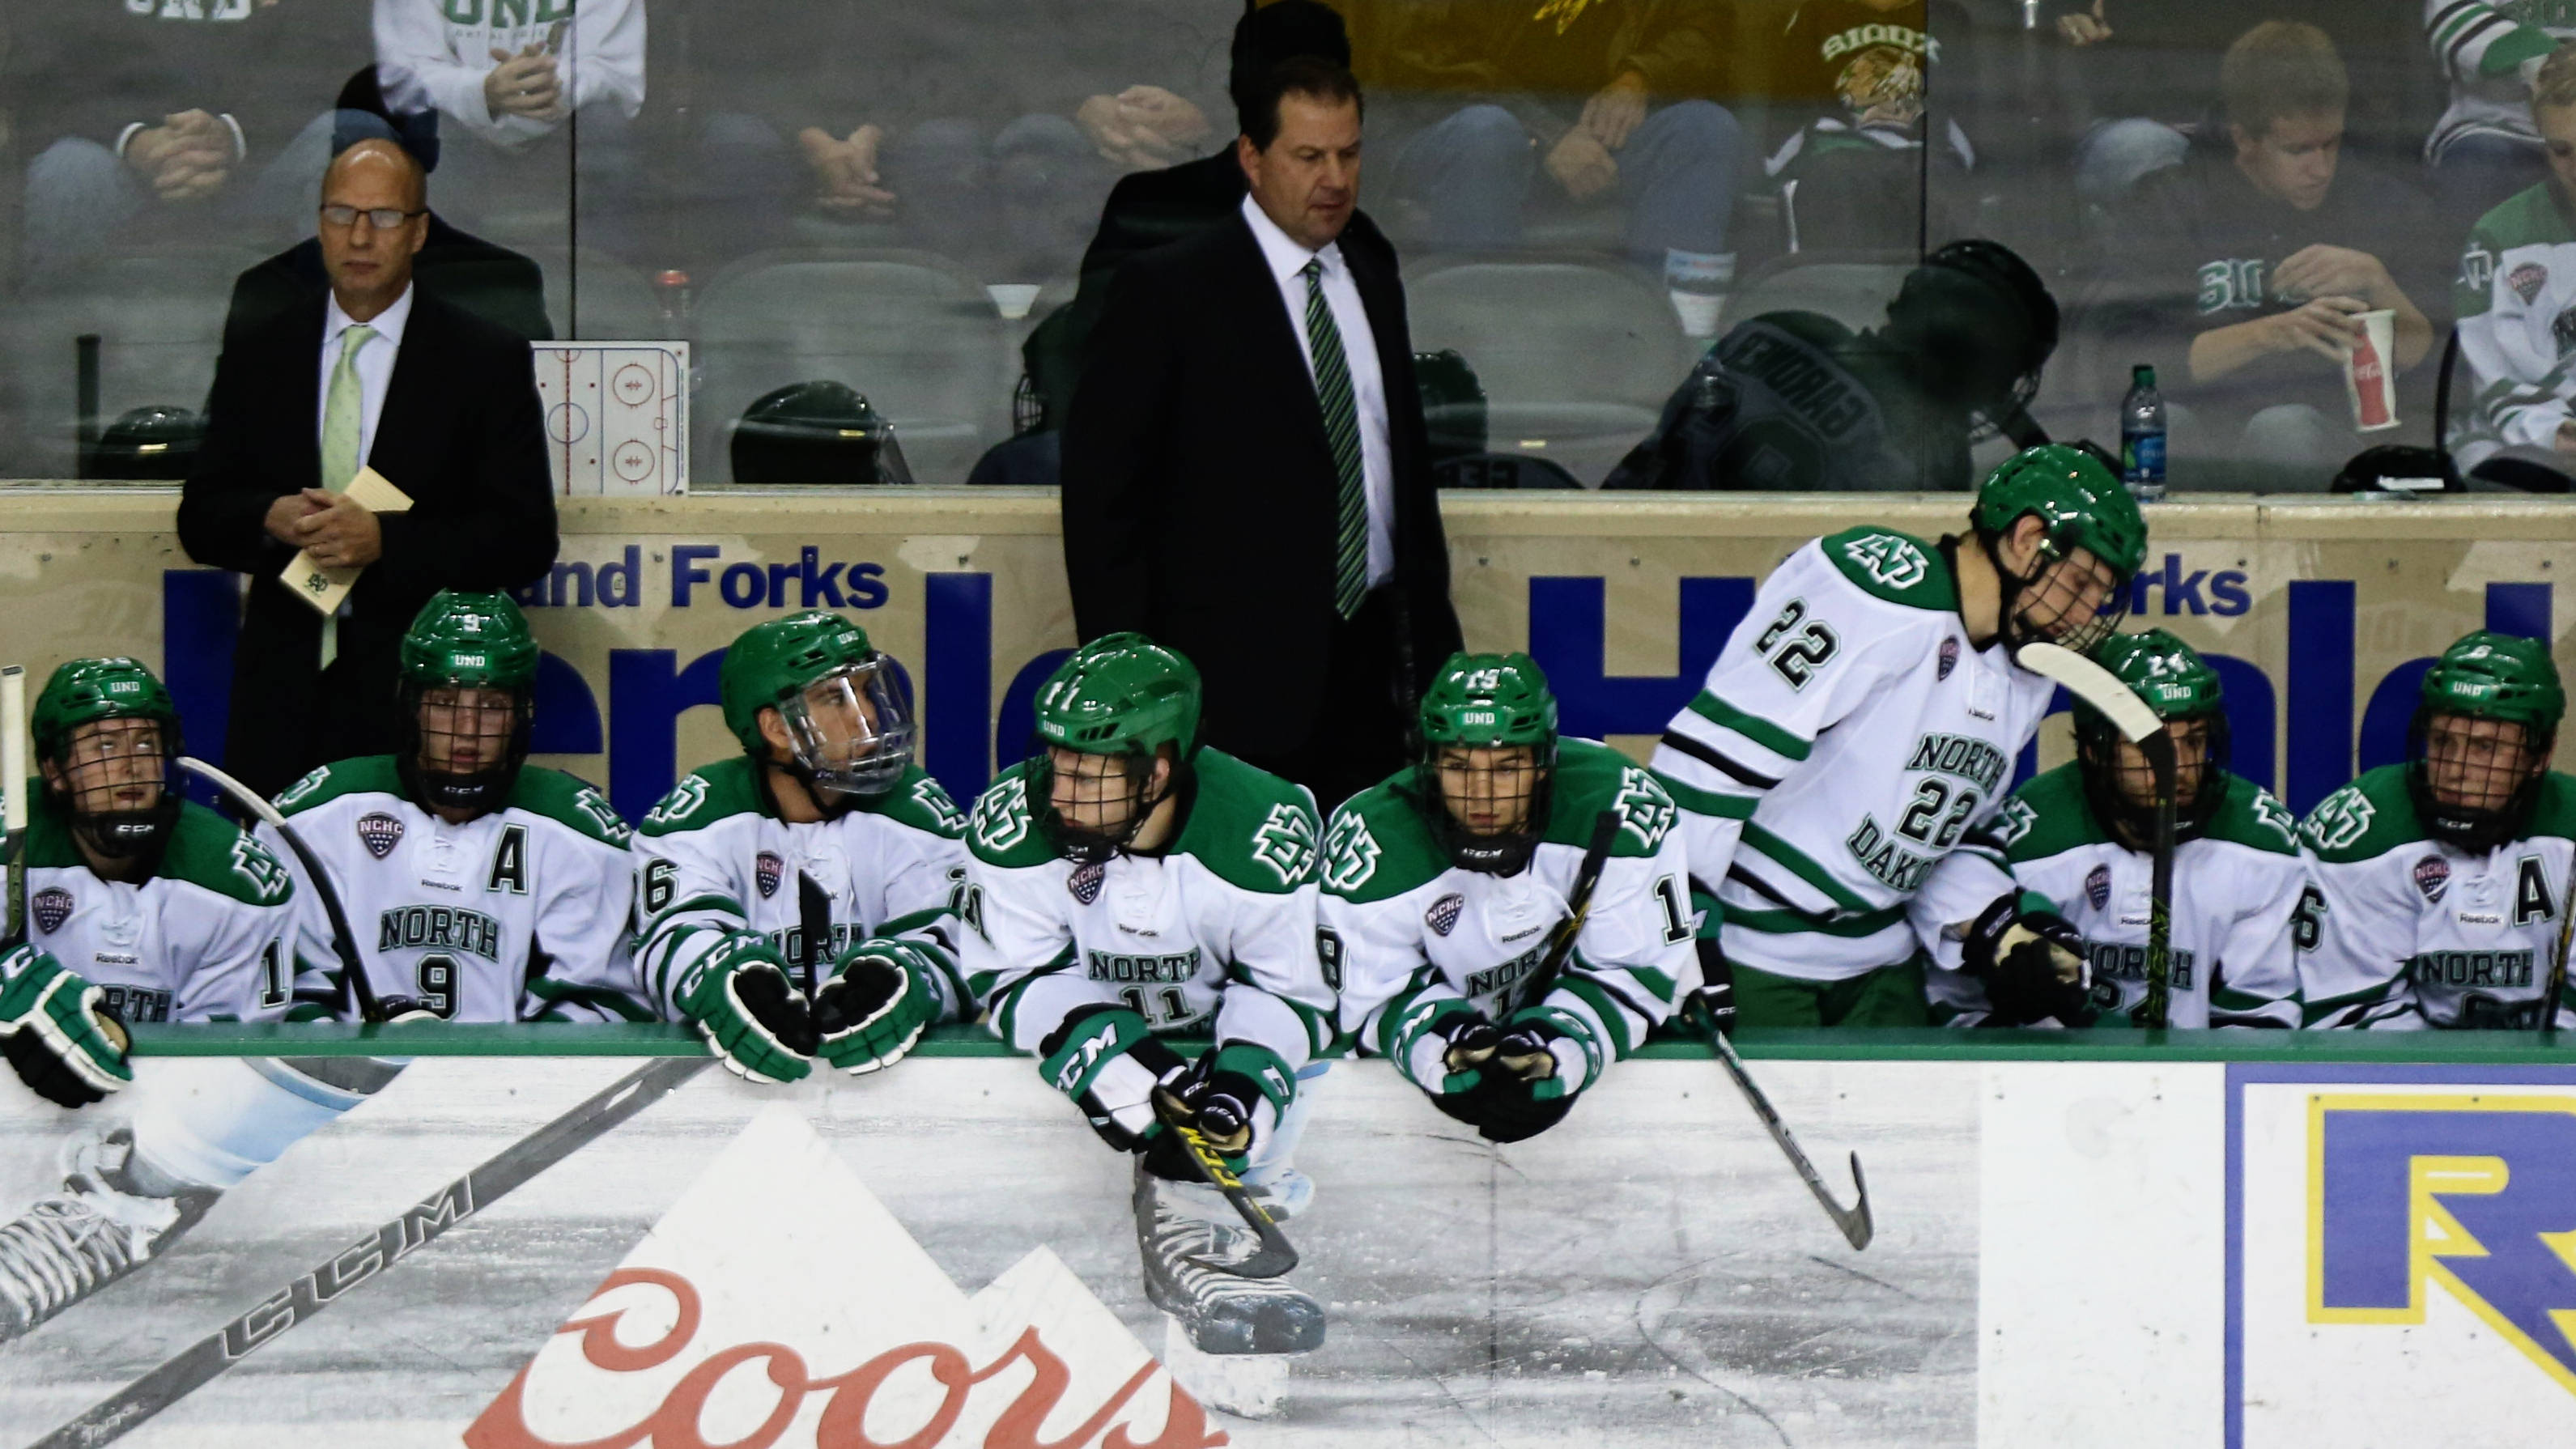 overtime tie enough to secure ice breaker title - north dakota athletics